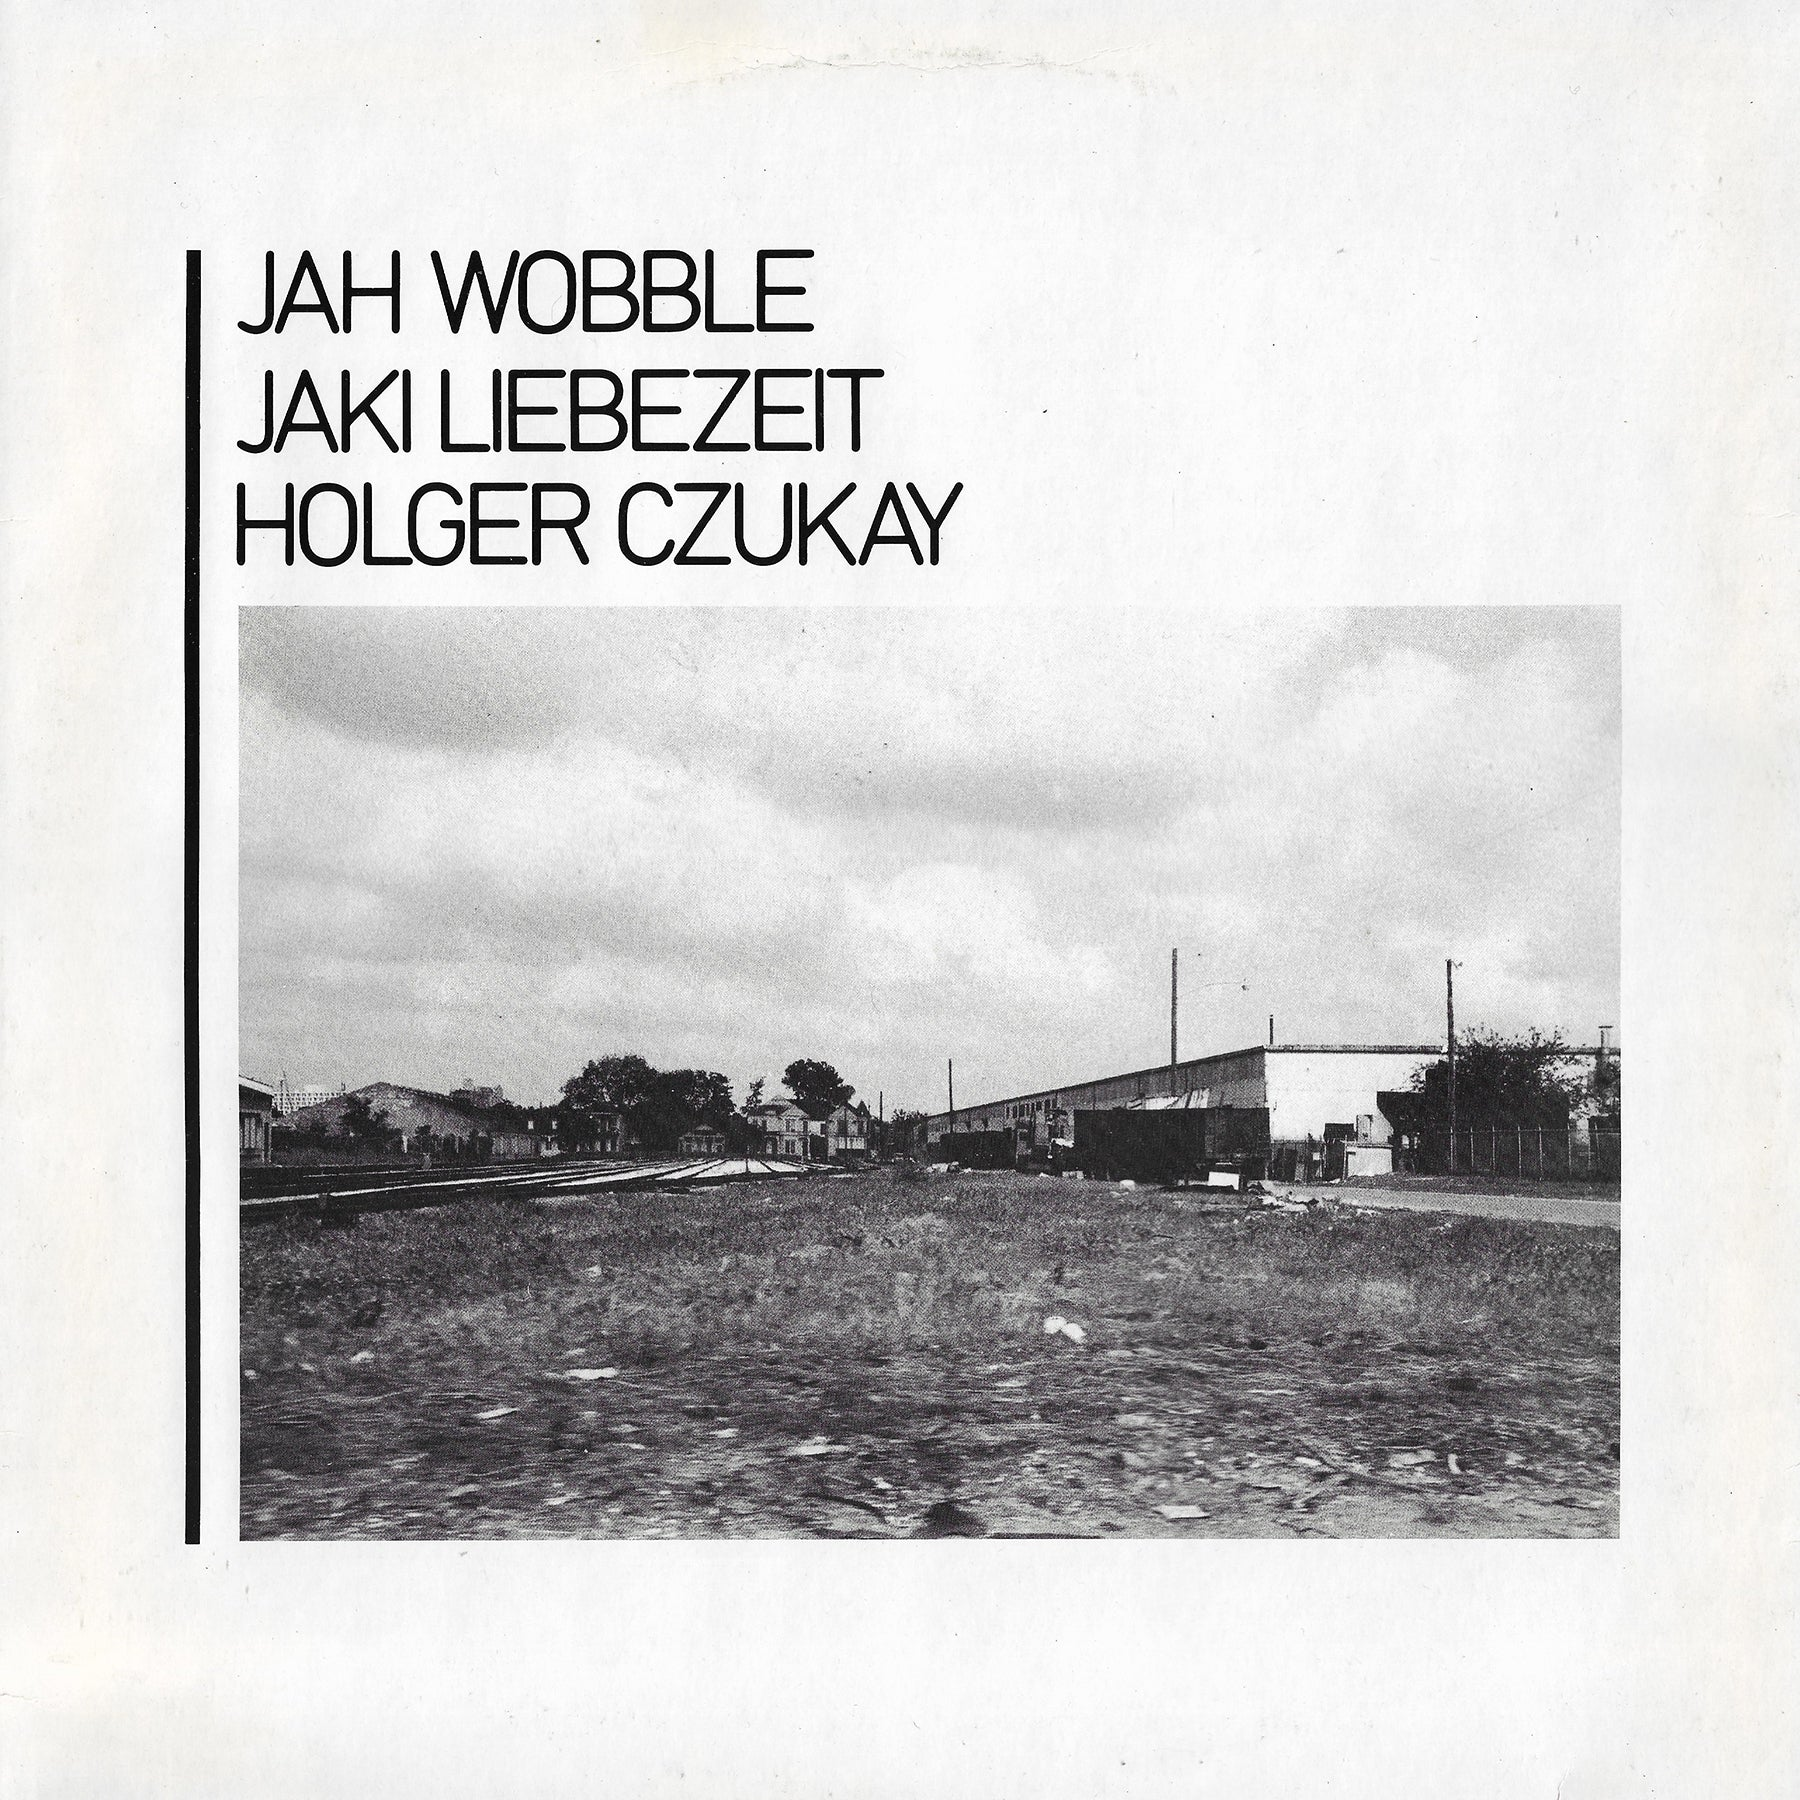 Jah Wobble, Jaki Liebezeit, Holger Czukay - How Much Are They?